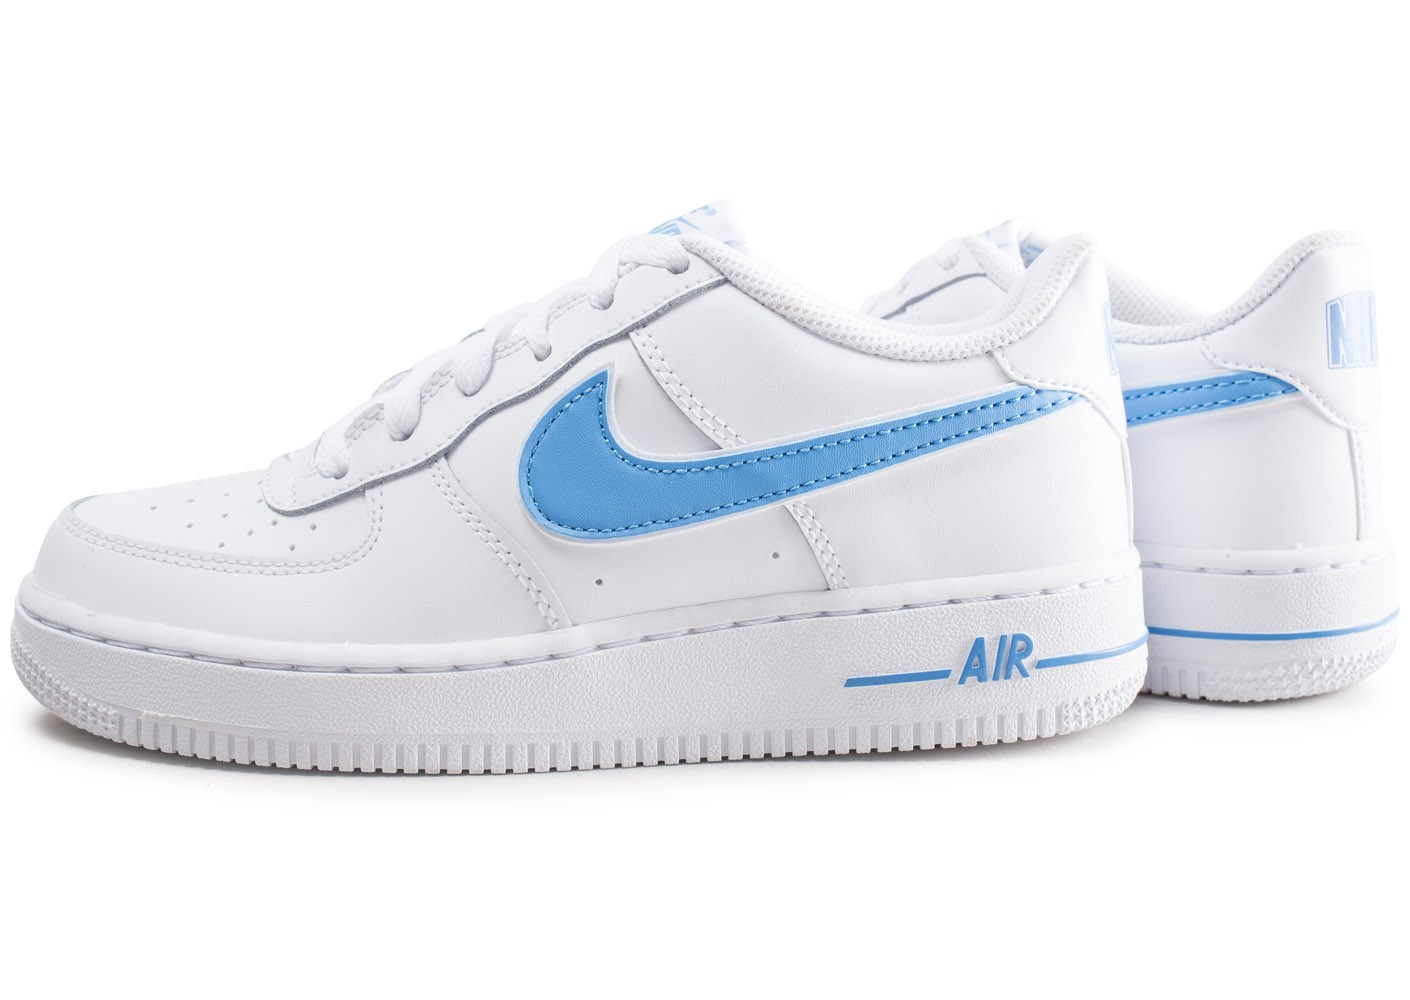 nike air force 1 semelle bleu